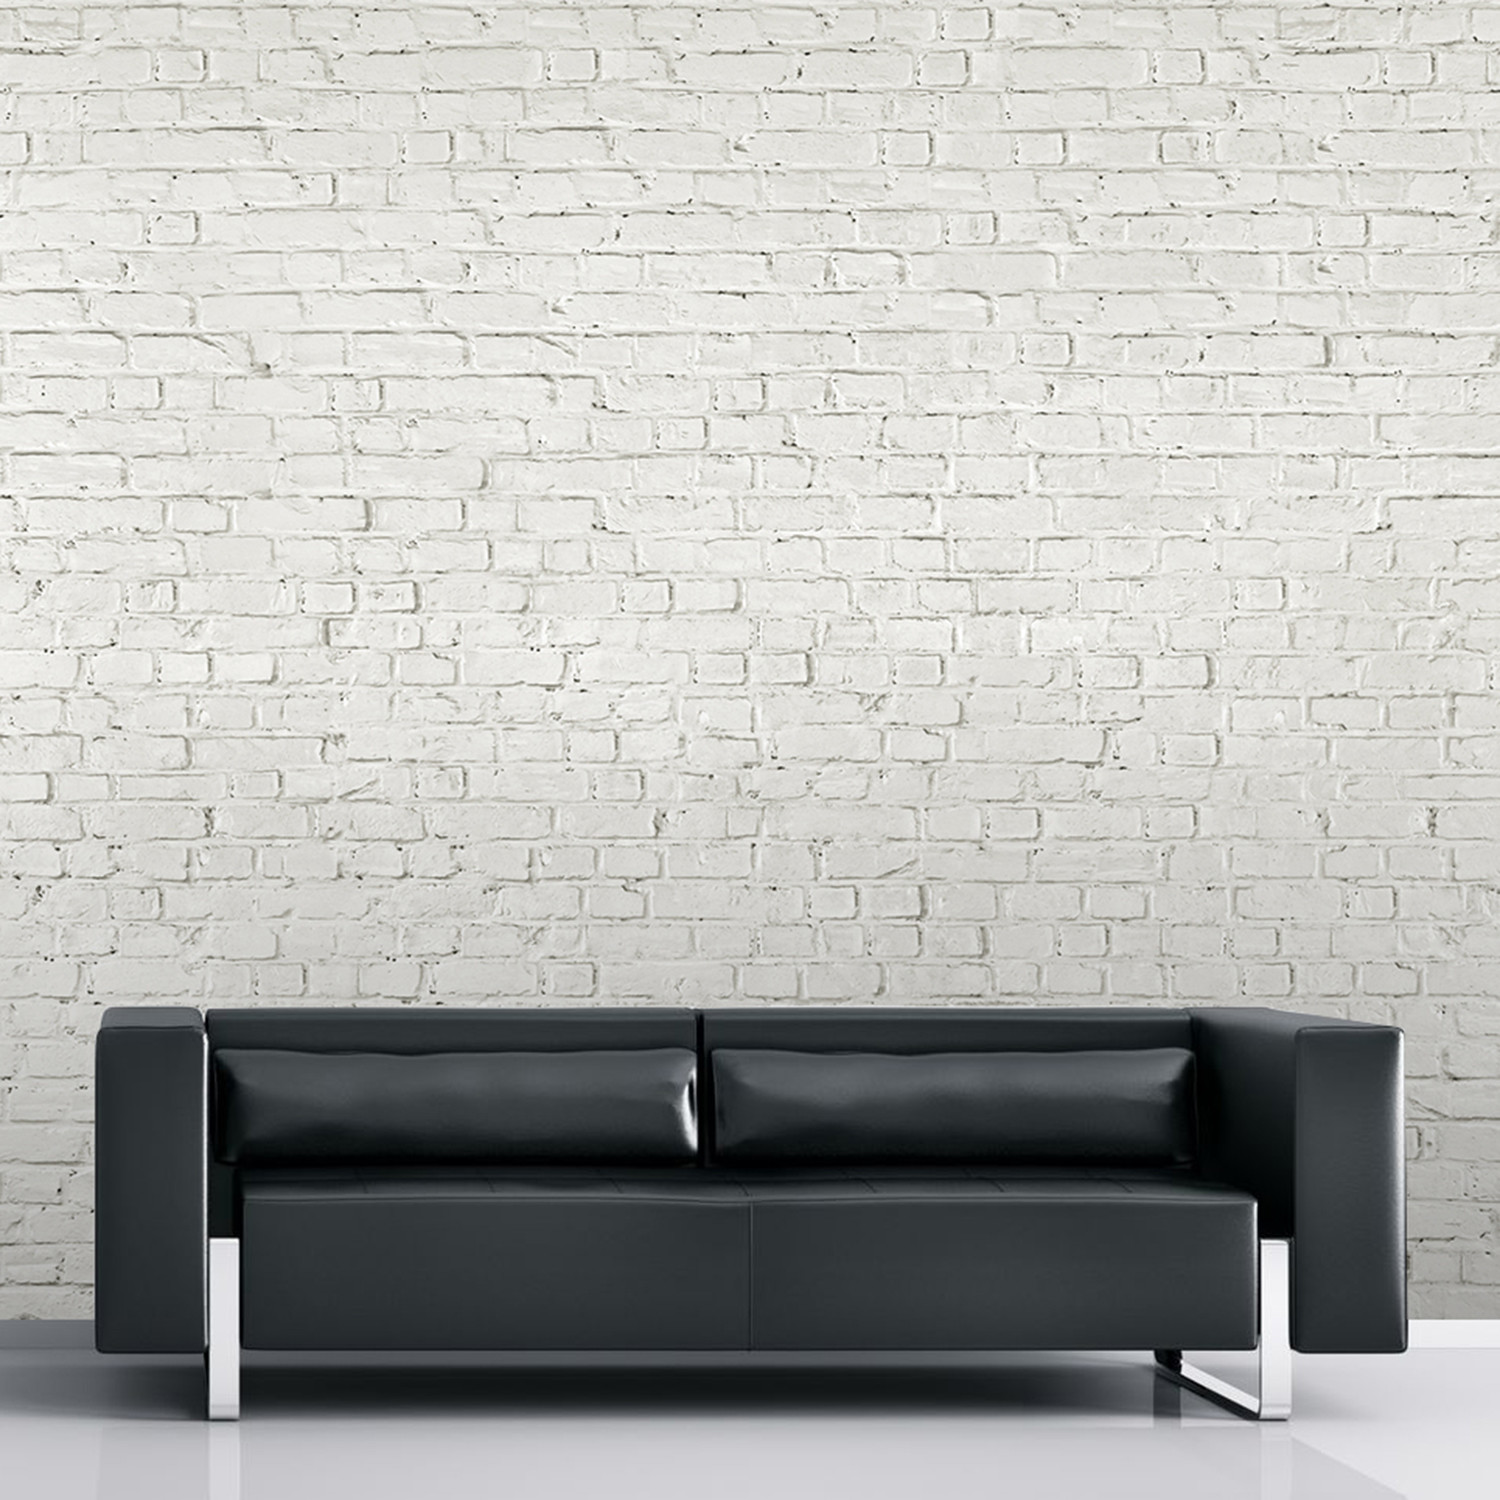 Distressed white brick 1 wall murals touch of modern for Distressed brick wall mural